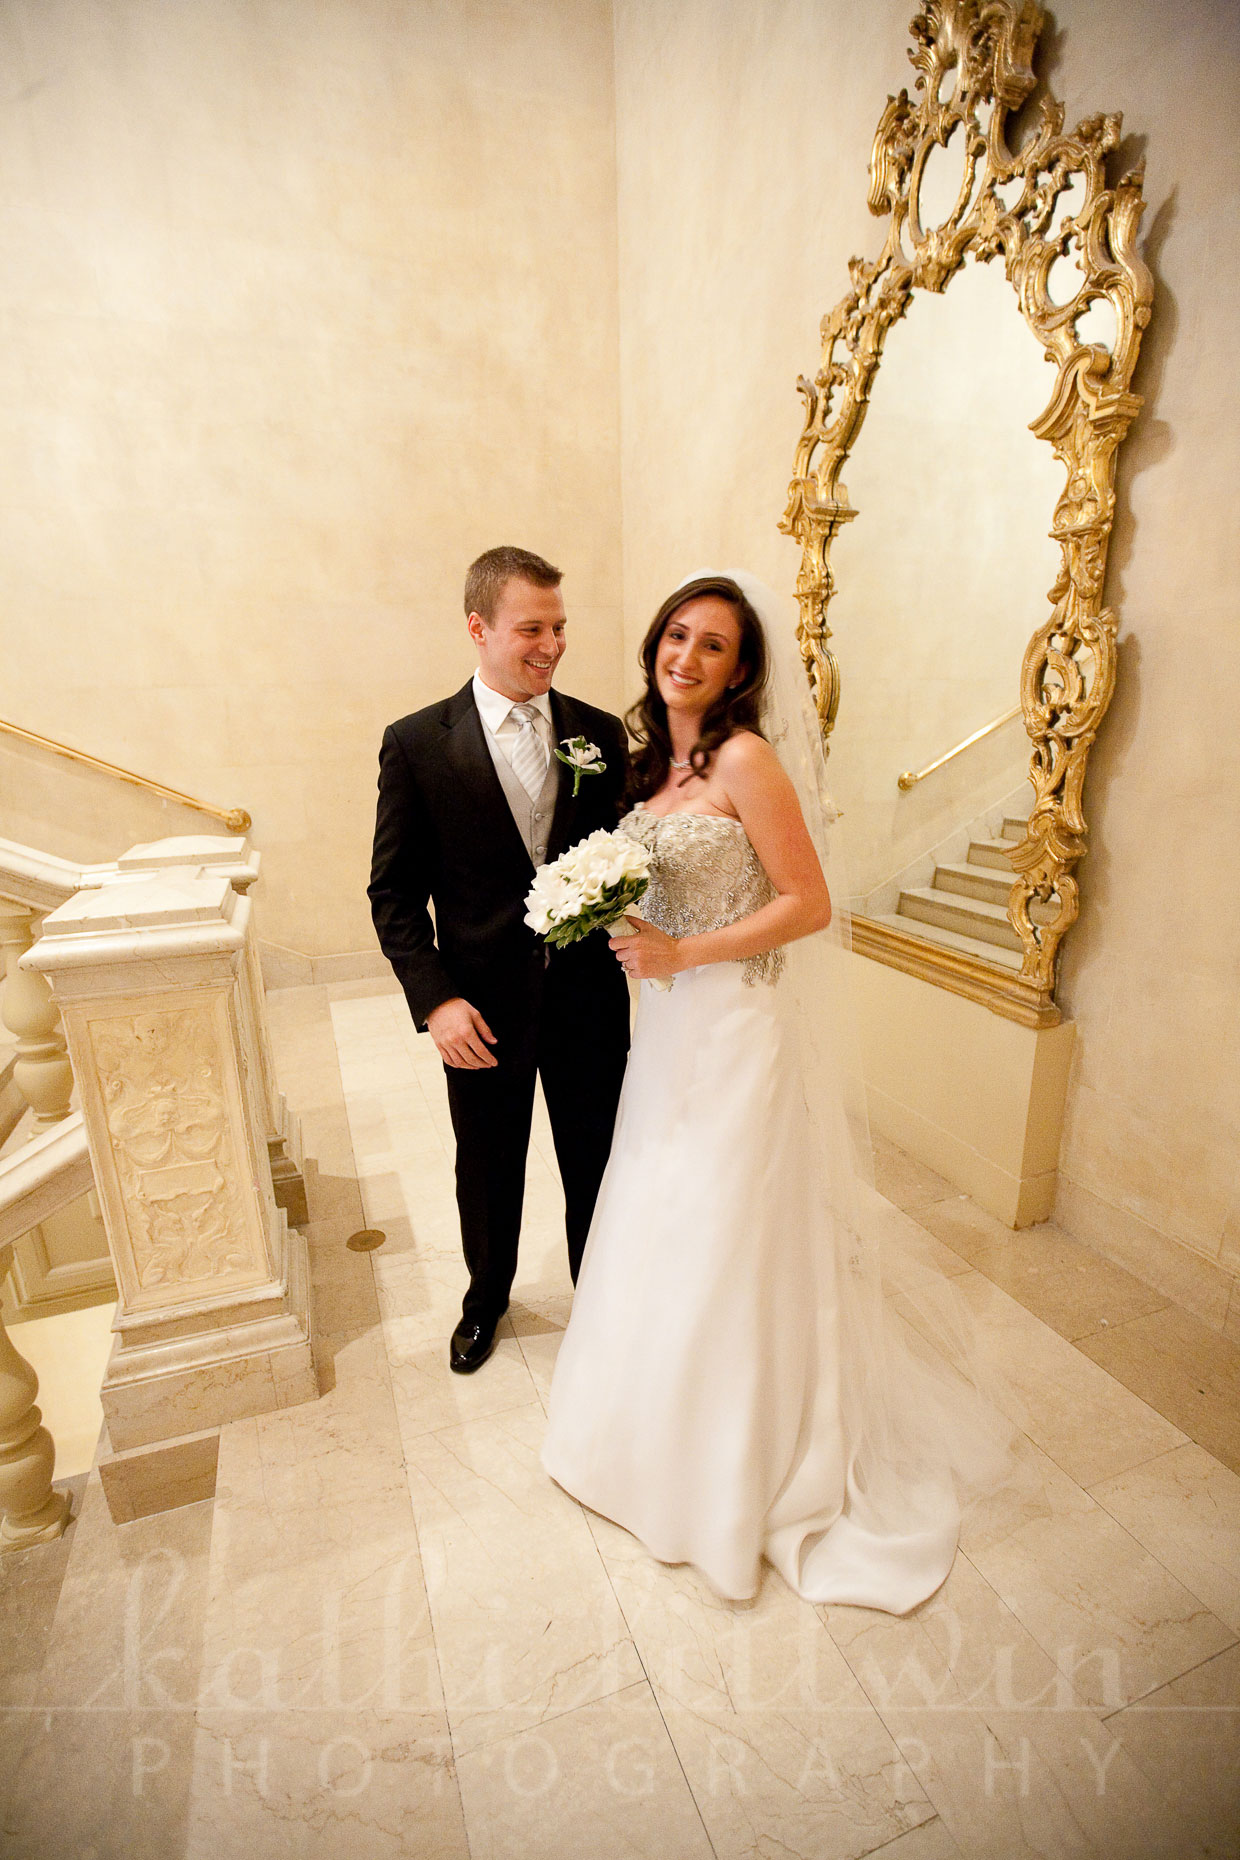 Kathi_Littwin_Photography_Plaza_NYC_Wedding-2022